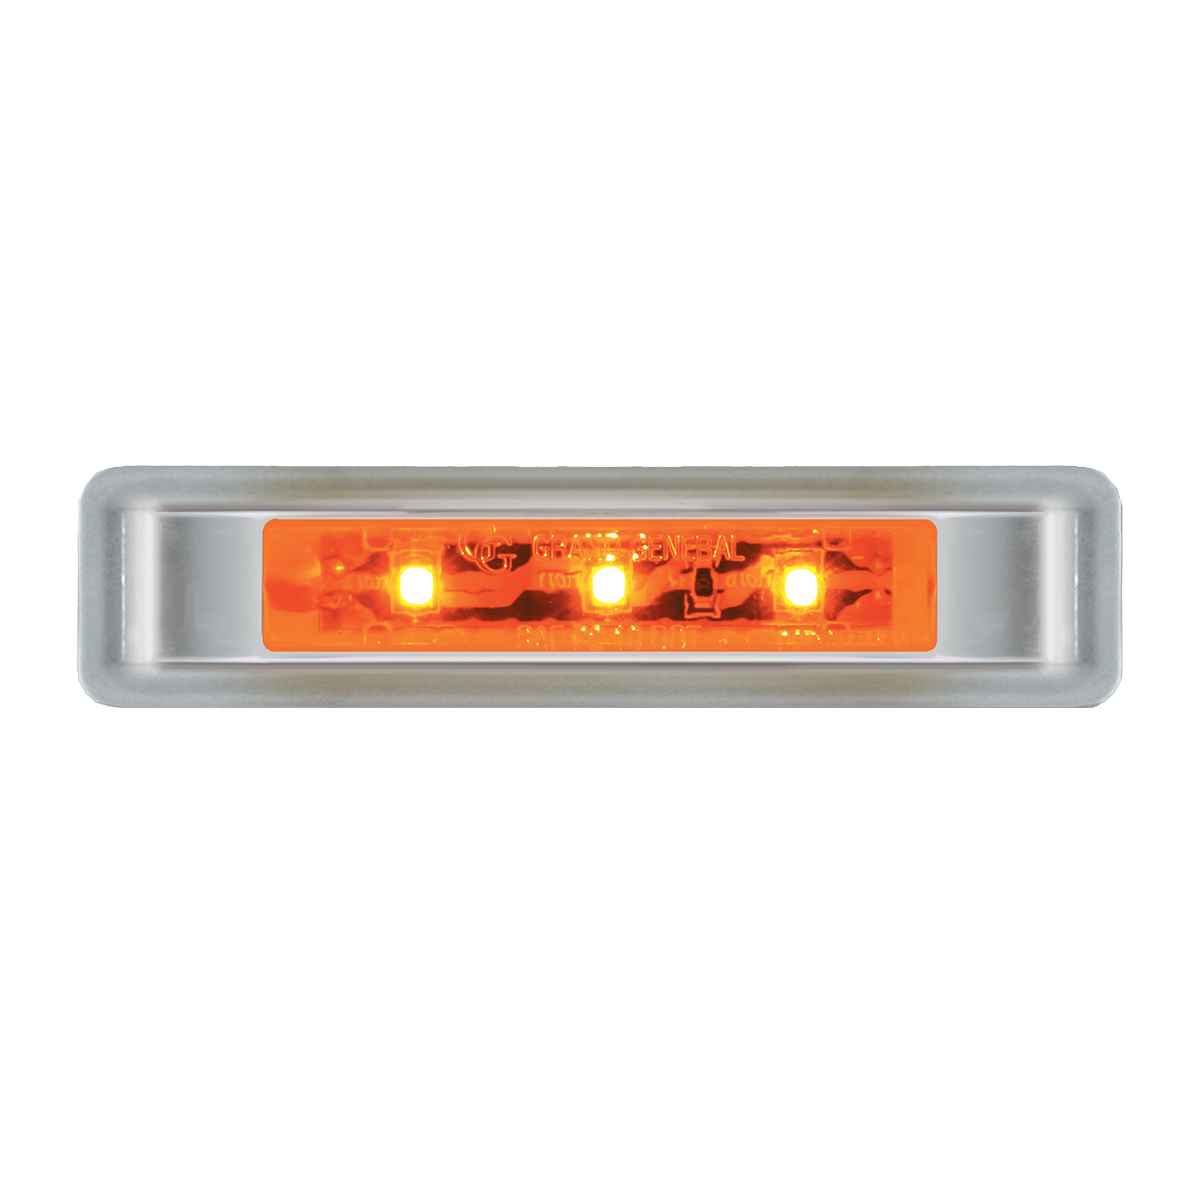 "76130 3.5"" Ultra Thin LED Marker Light w/ Chrome Plastic Bezel"